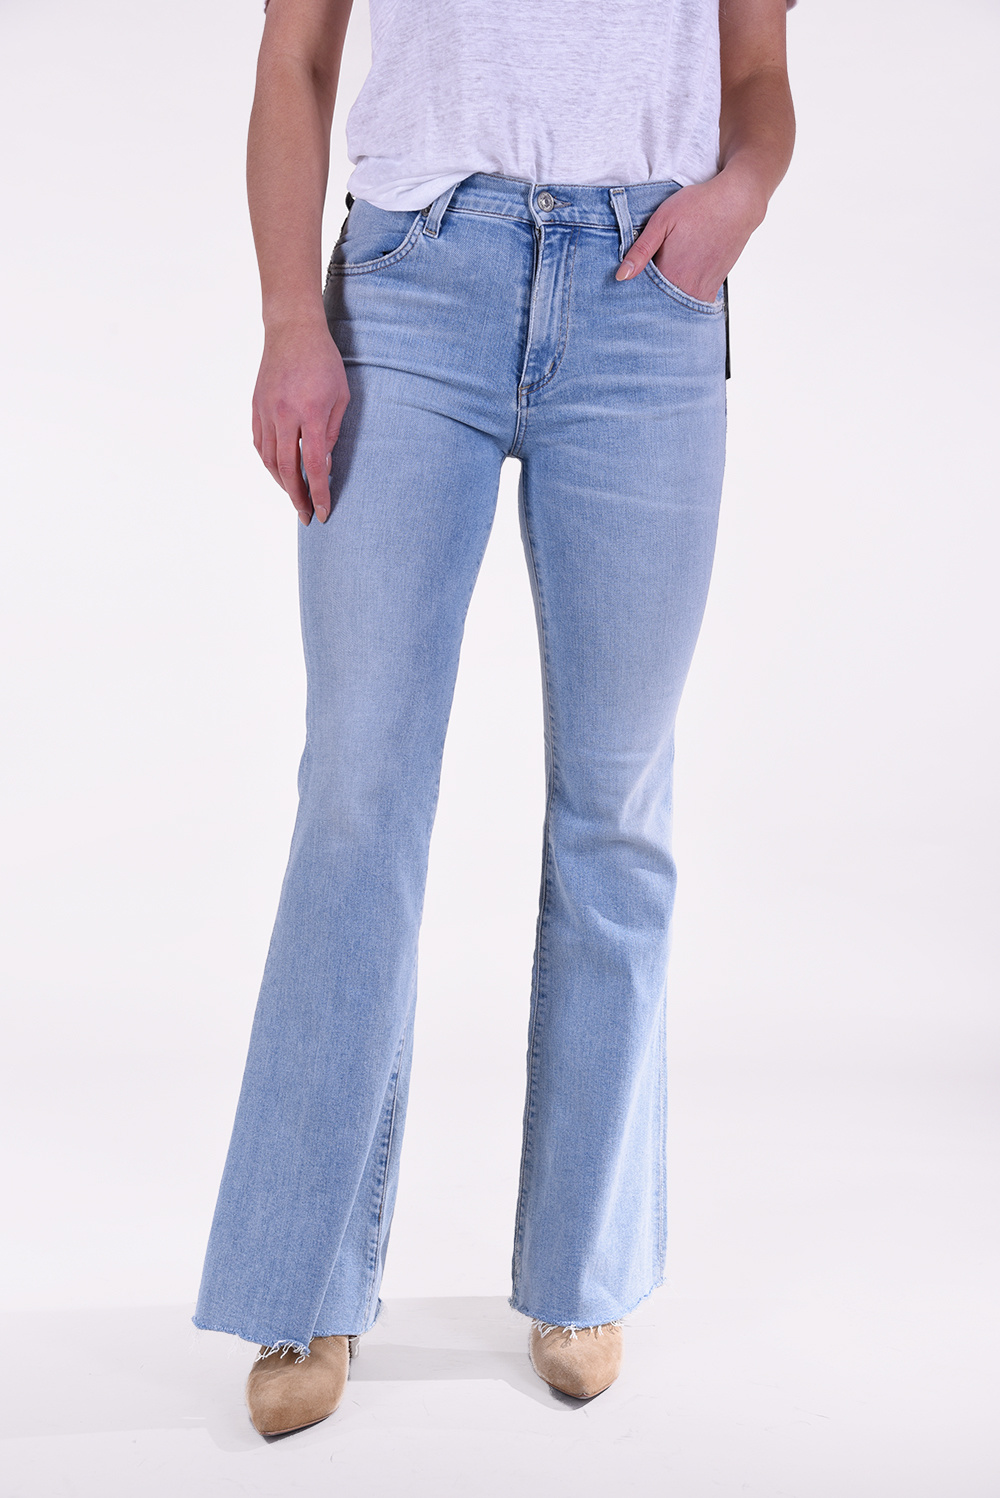 Citizens of Humanity jeans Chloe Flare blauw